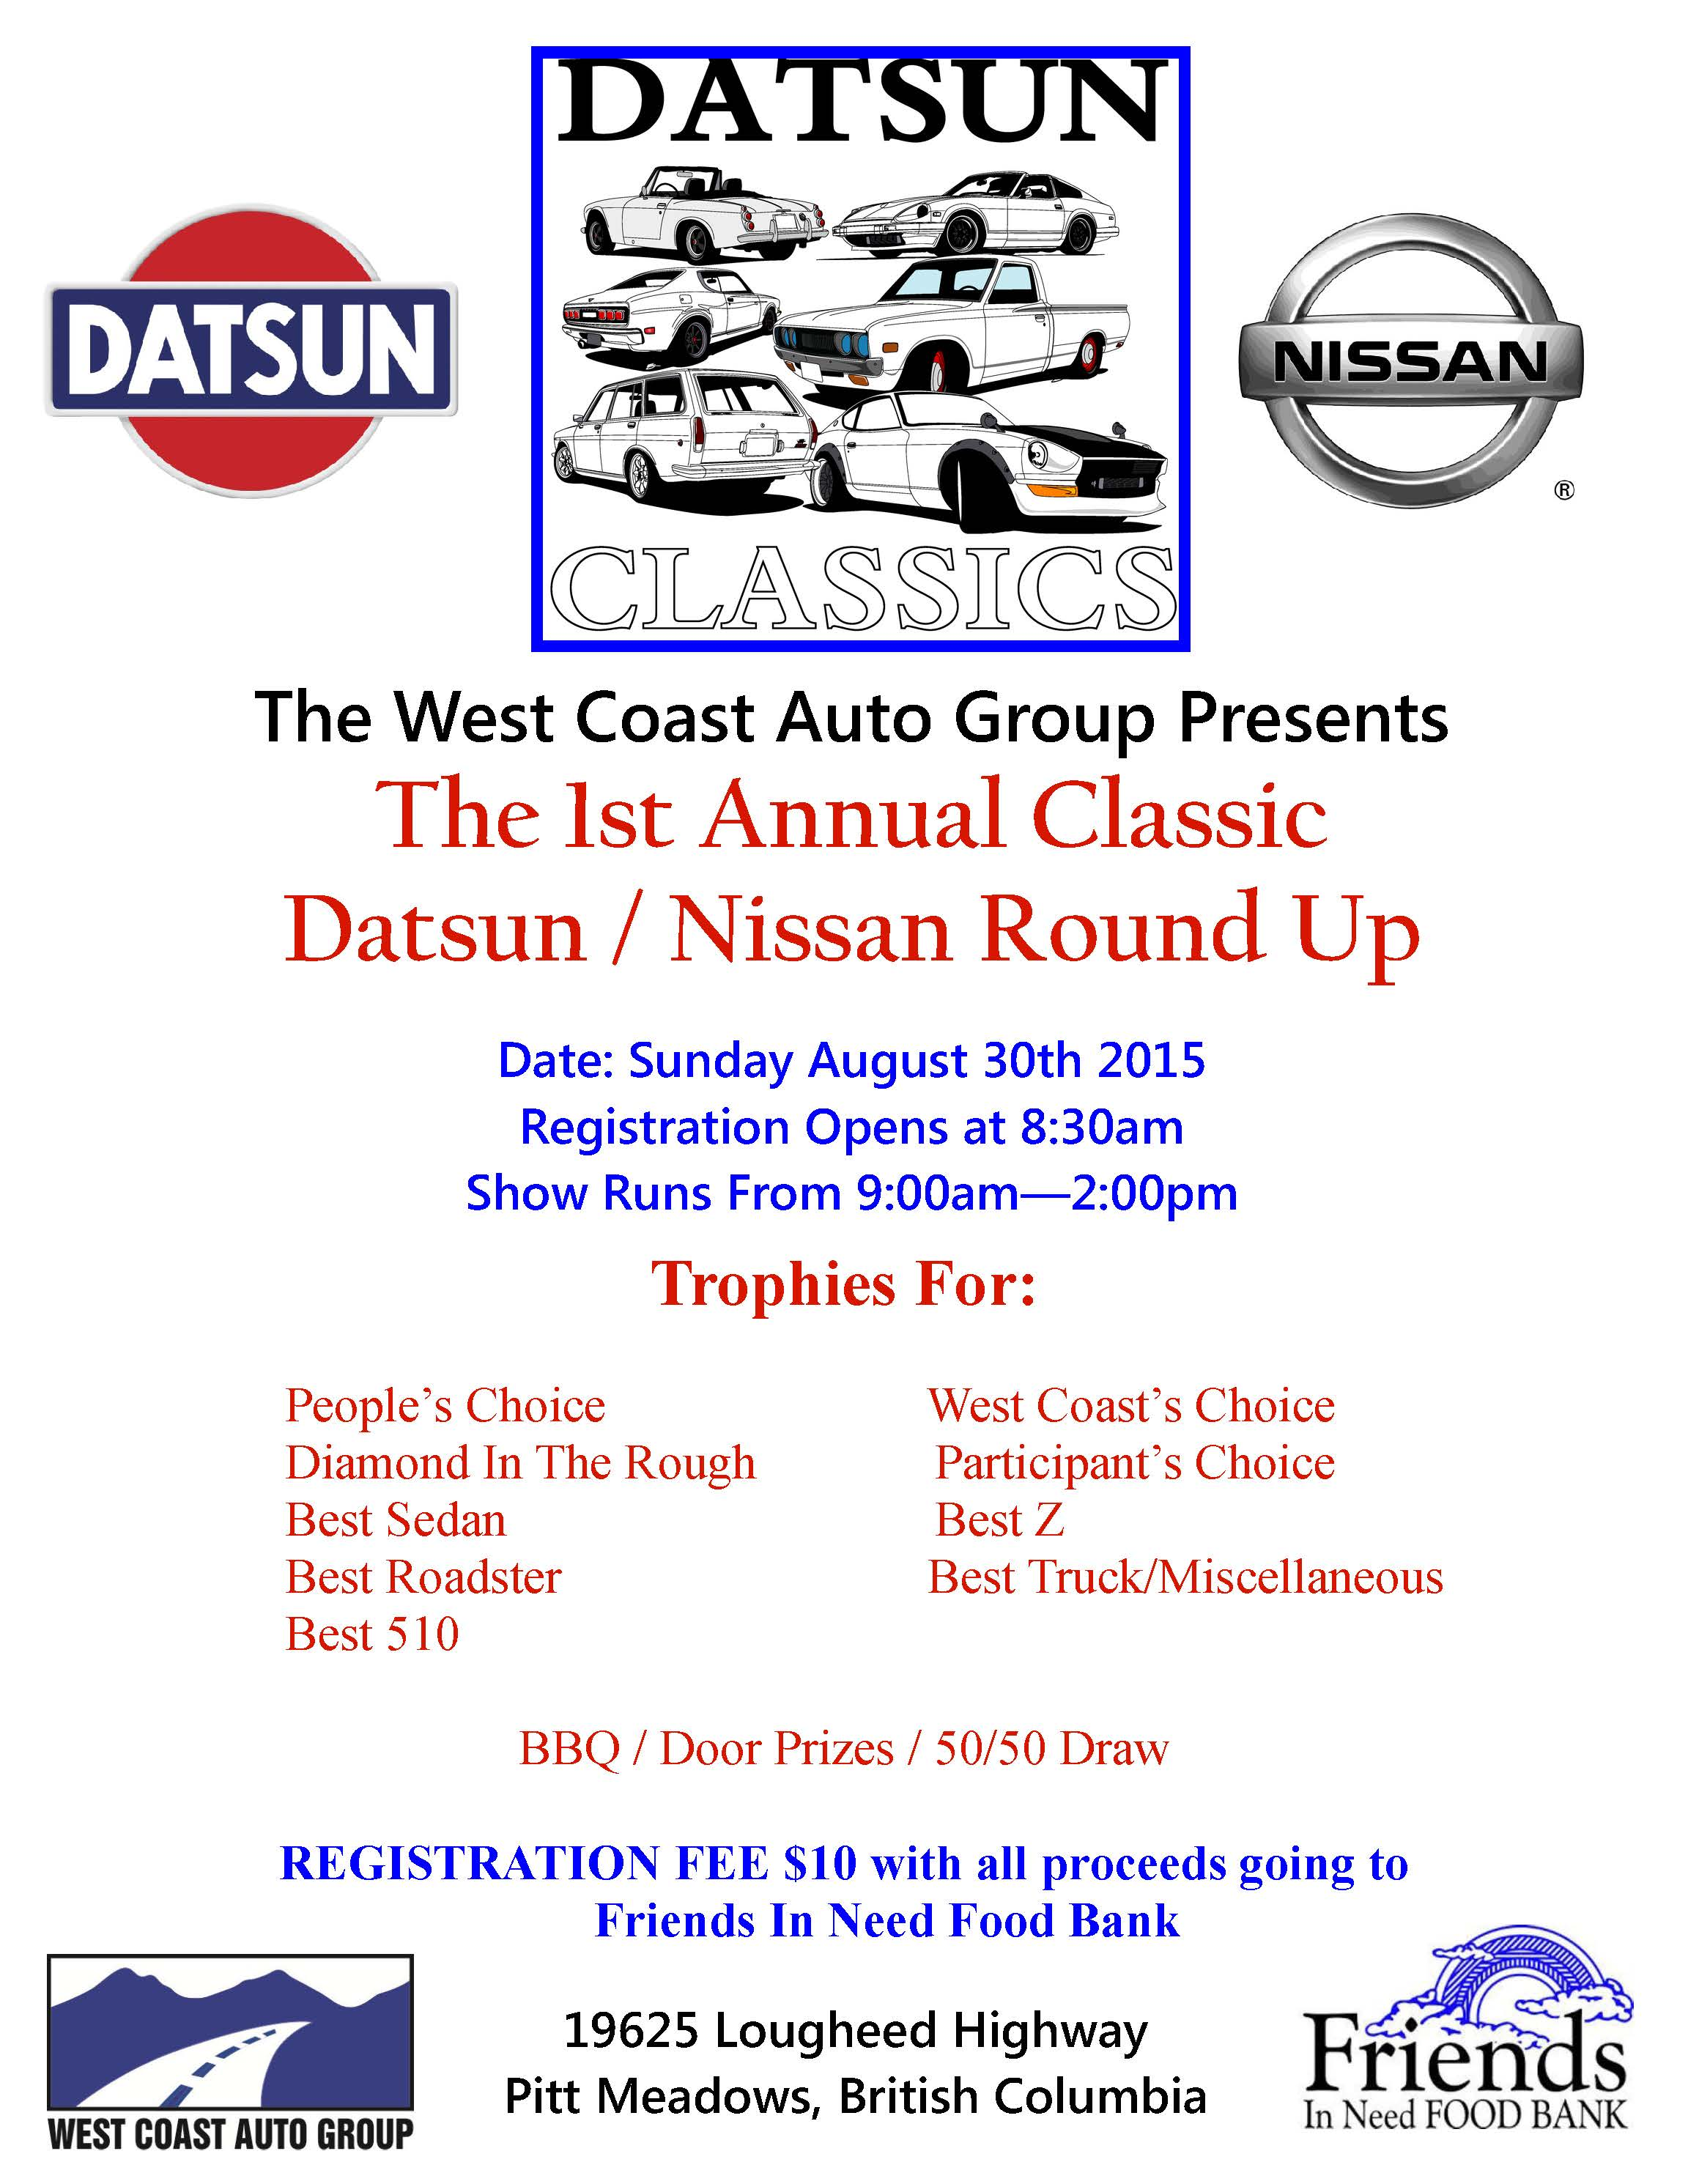 Datsun Round Up Poster.jpg